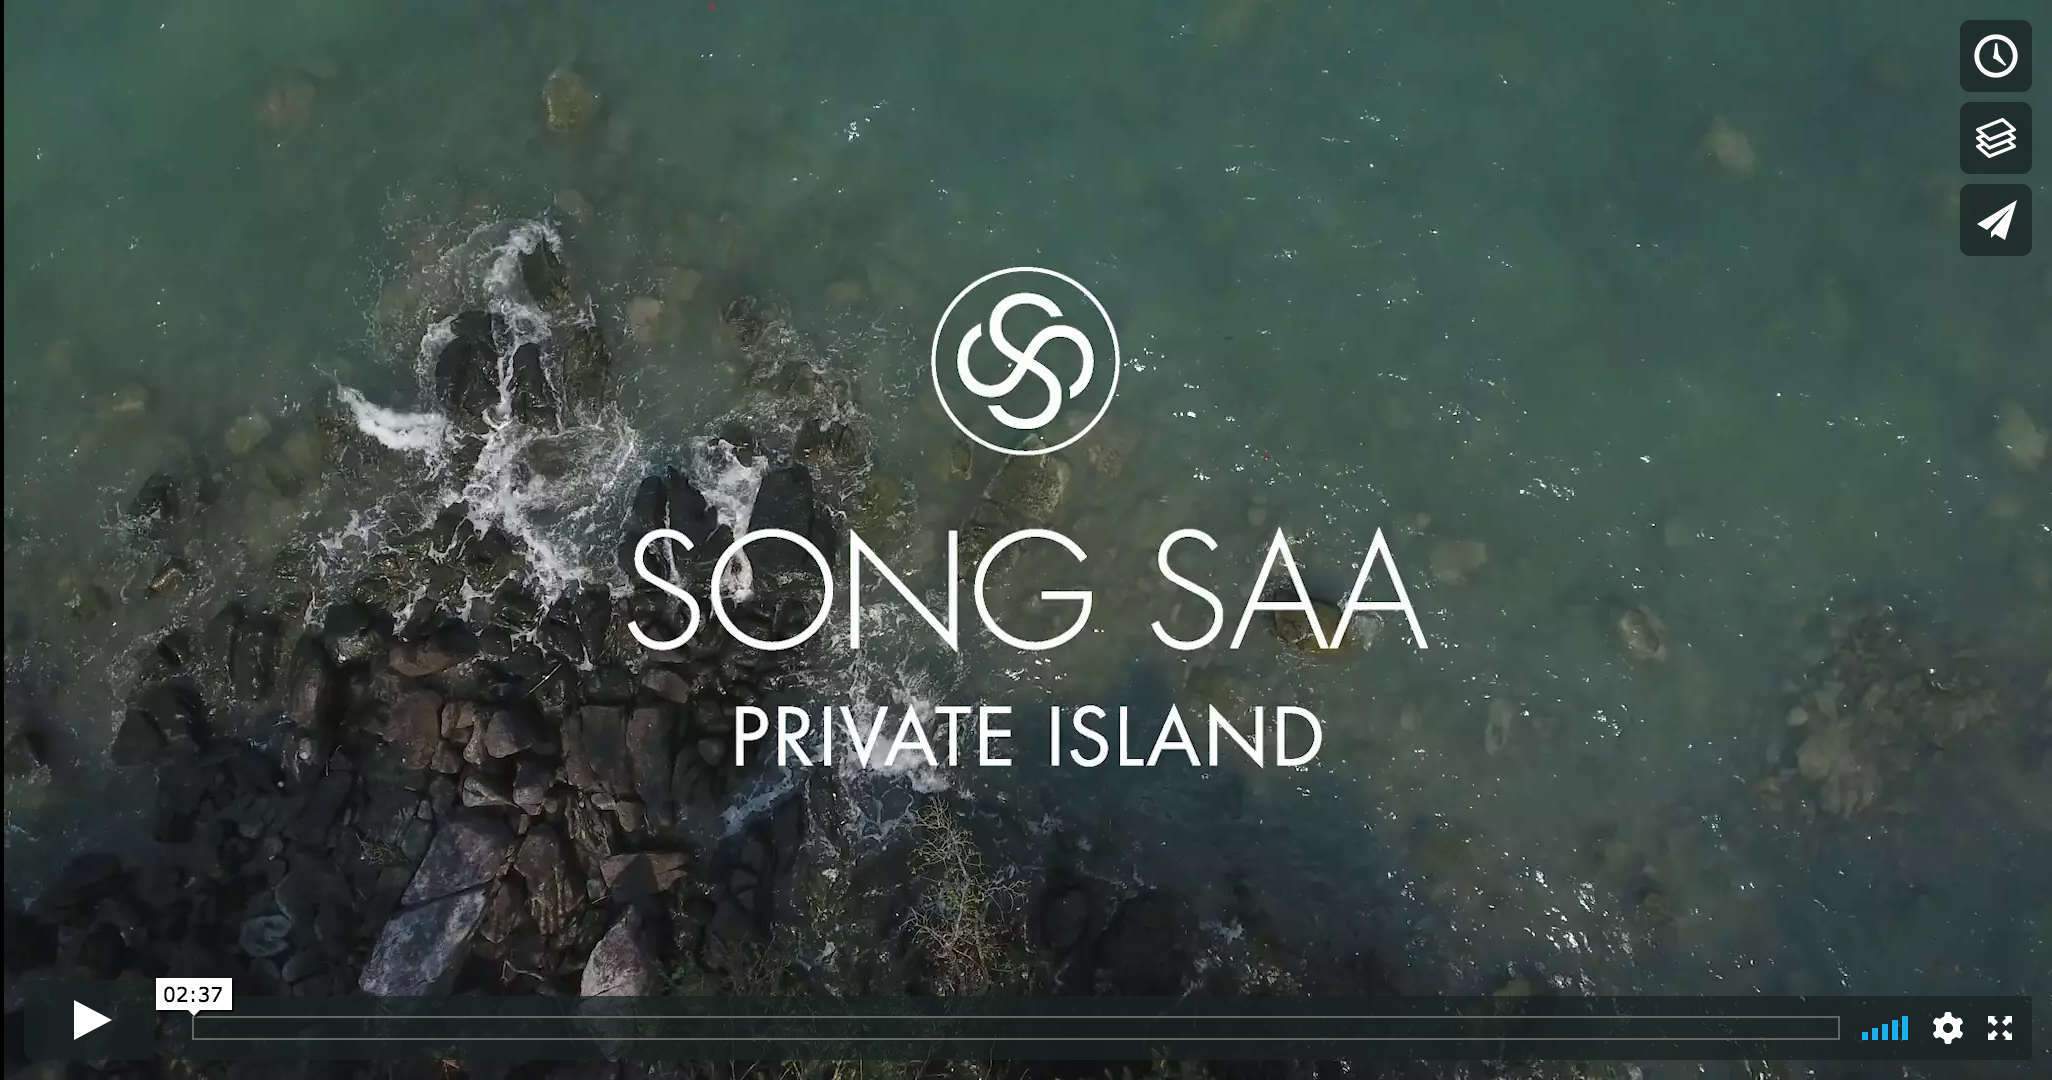 Through integrated hospitality, design, property, solar energy and investment enterprises, as well as a standard-setting foundation, Hong Kong-based Song Saa Collective combines ethics-led business practices and needs-based activism to honour the past and build better futures throughout Southeast Asia and beyond.(2018)